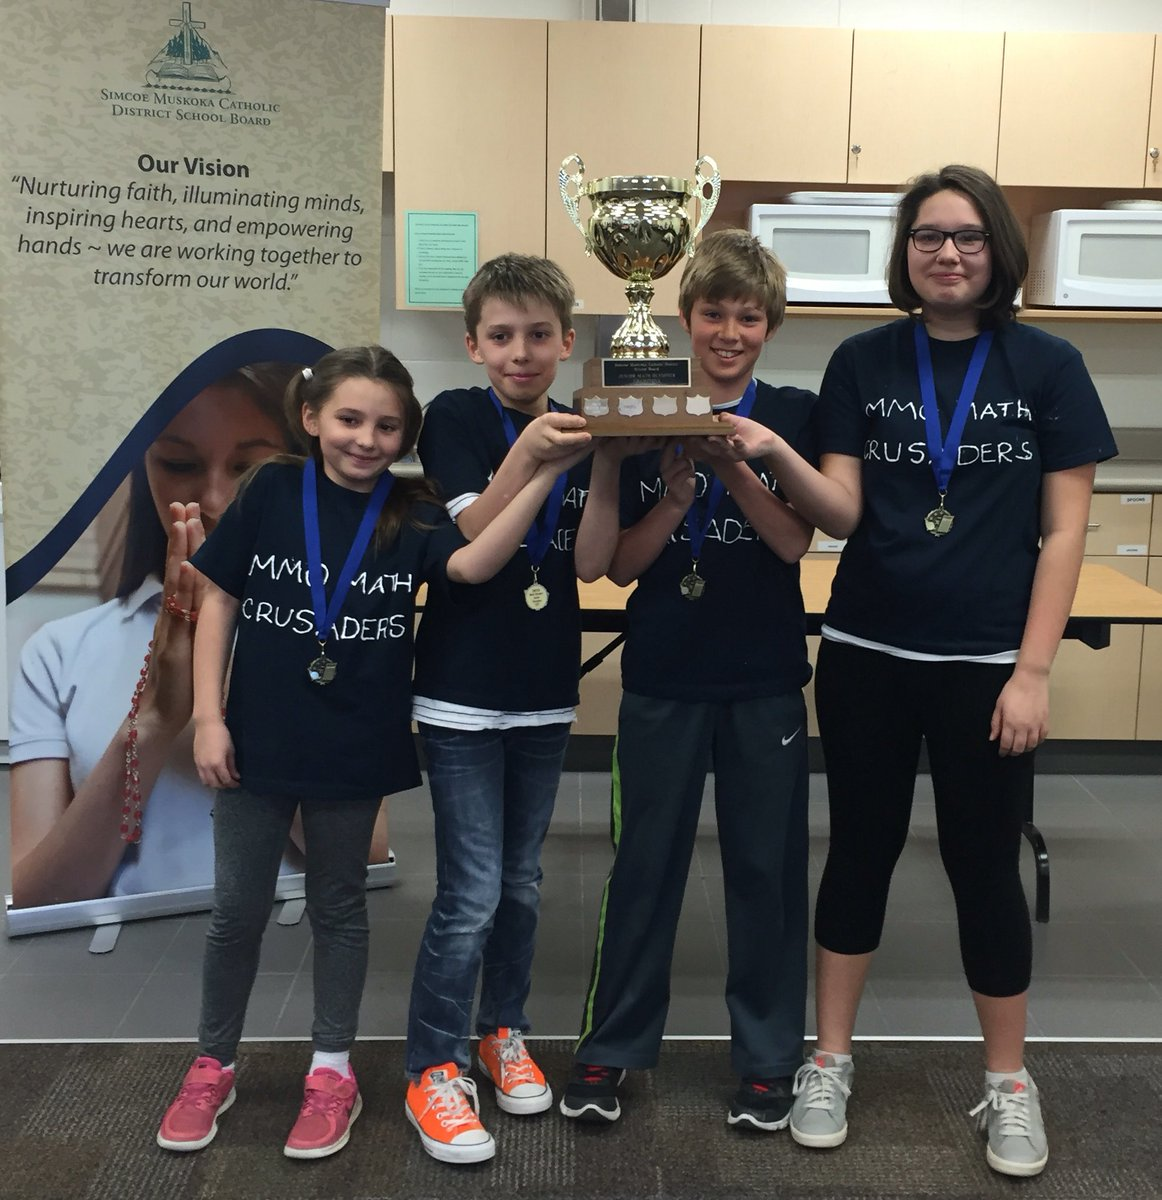 @SMCDSB_MMO had their math on today @SMCDSB Junior Math Olympics! Congratulations Champs #smcdsblearns https://t.co/OqNjZtYbXa